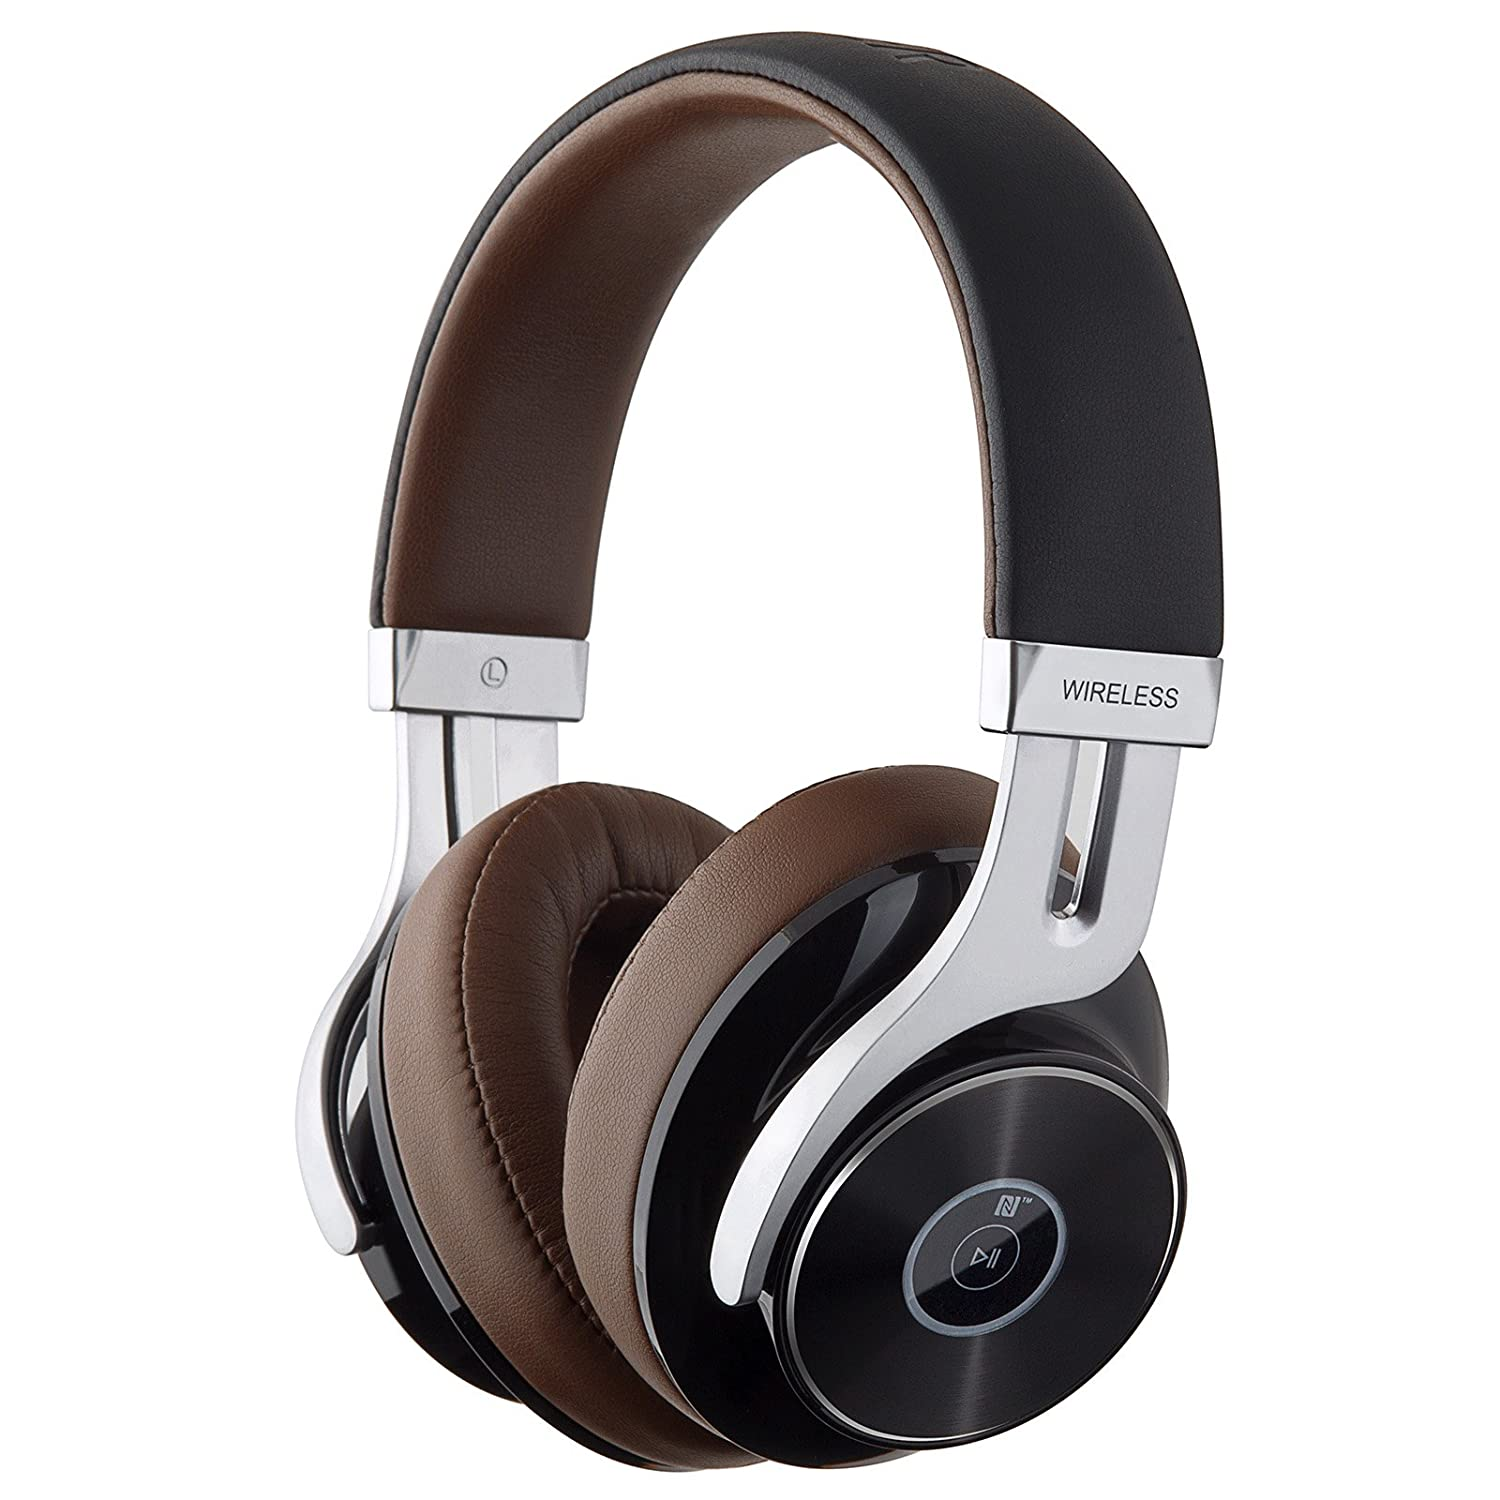 Edifier W855BT Bluetooth Headphones – Over-Ear Stereo Wireless Headphone with Microphone and Volume Control – Brown Black